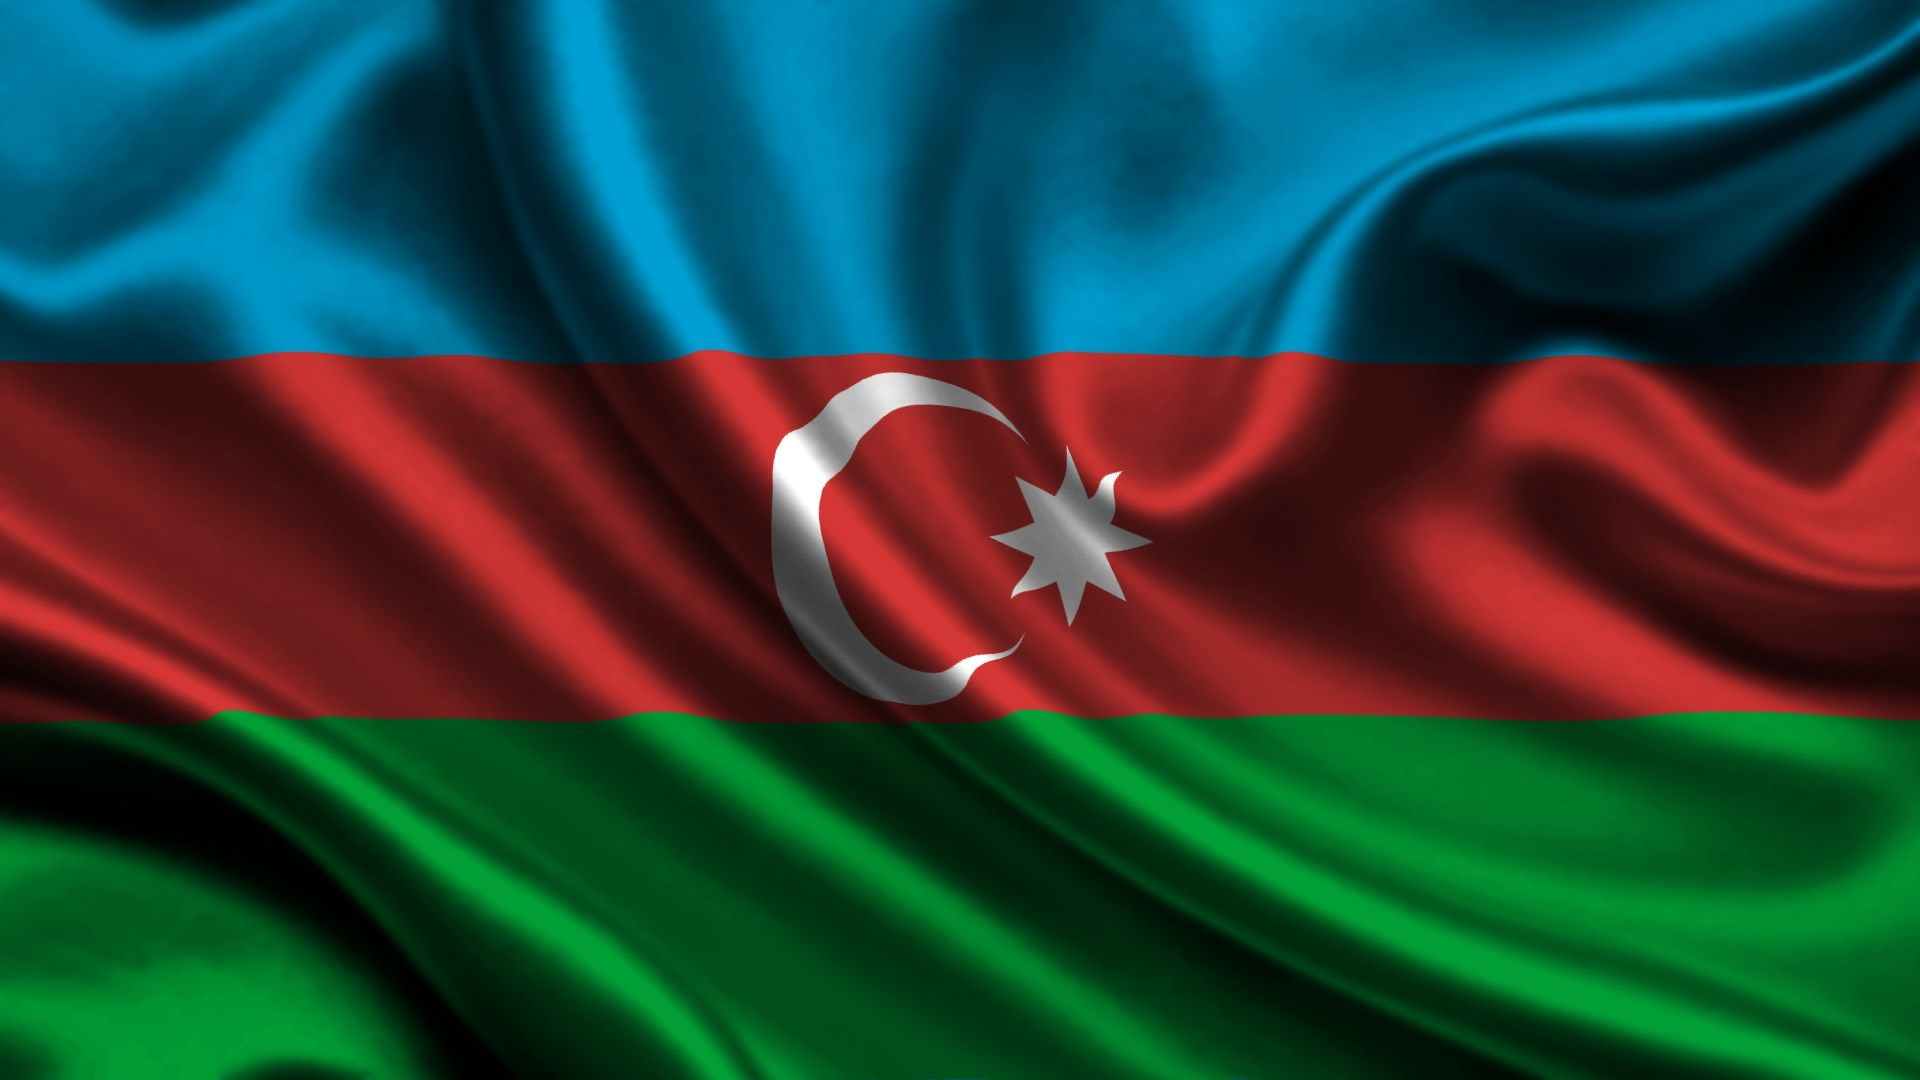 1920x1080 px flag of azerbaijan wallpaper for mac computers by 1920x1080